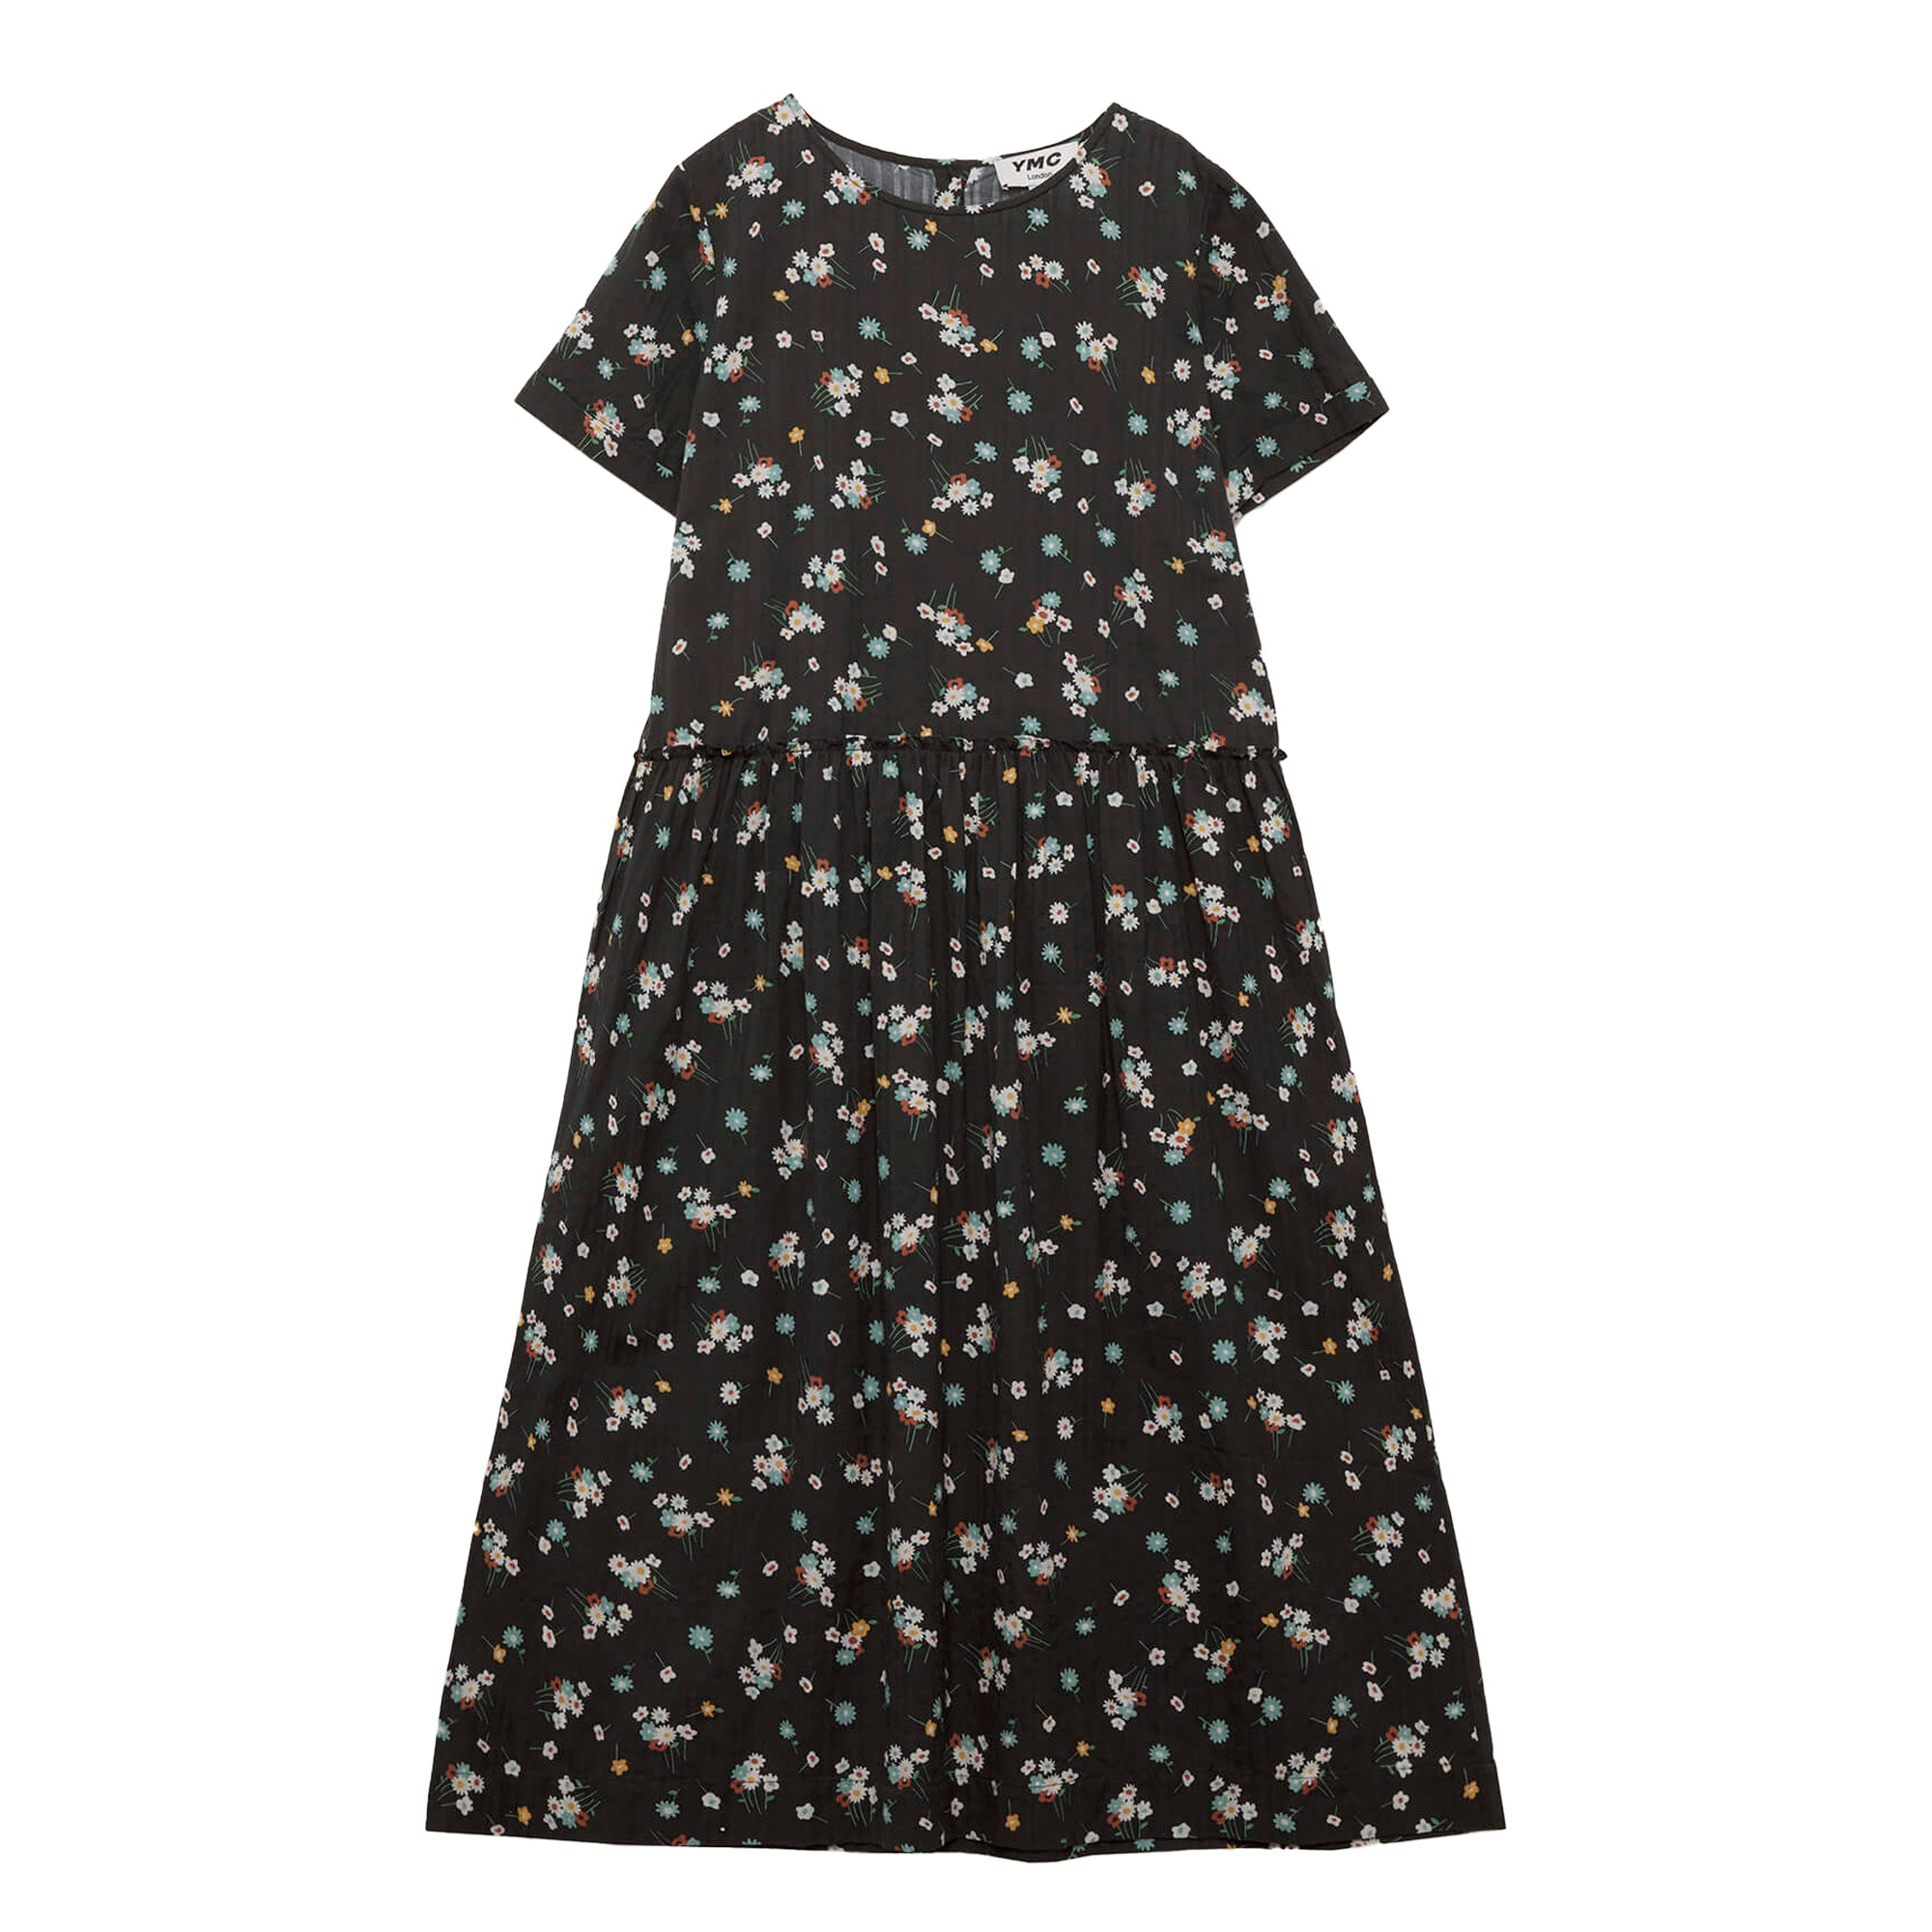 YMC Womens Perhacs Dress: Black - The Union Project